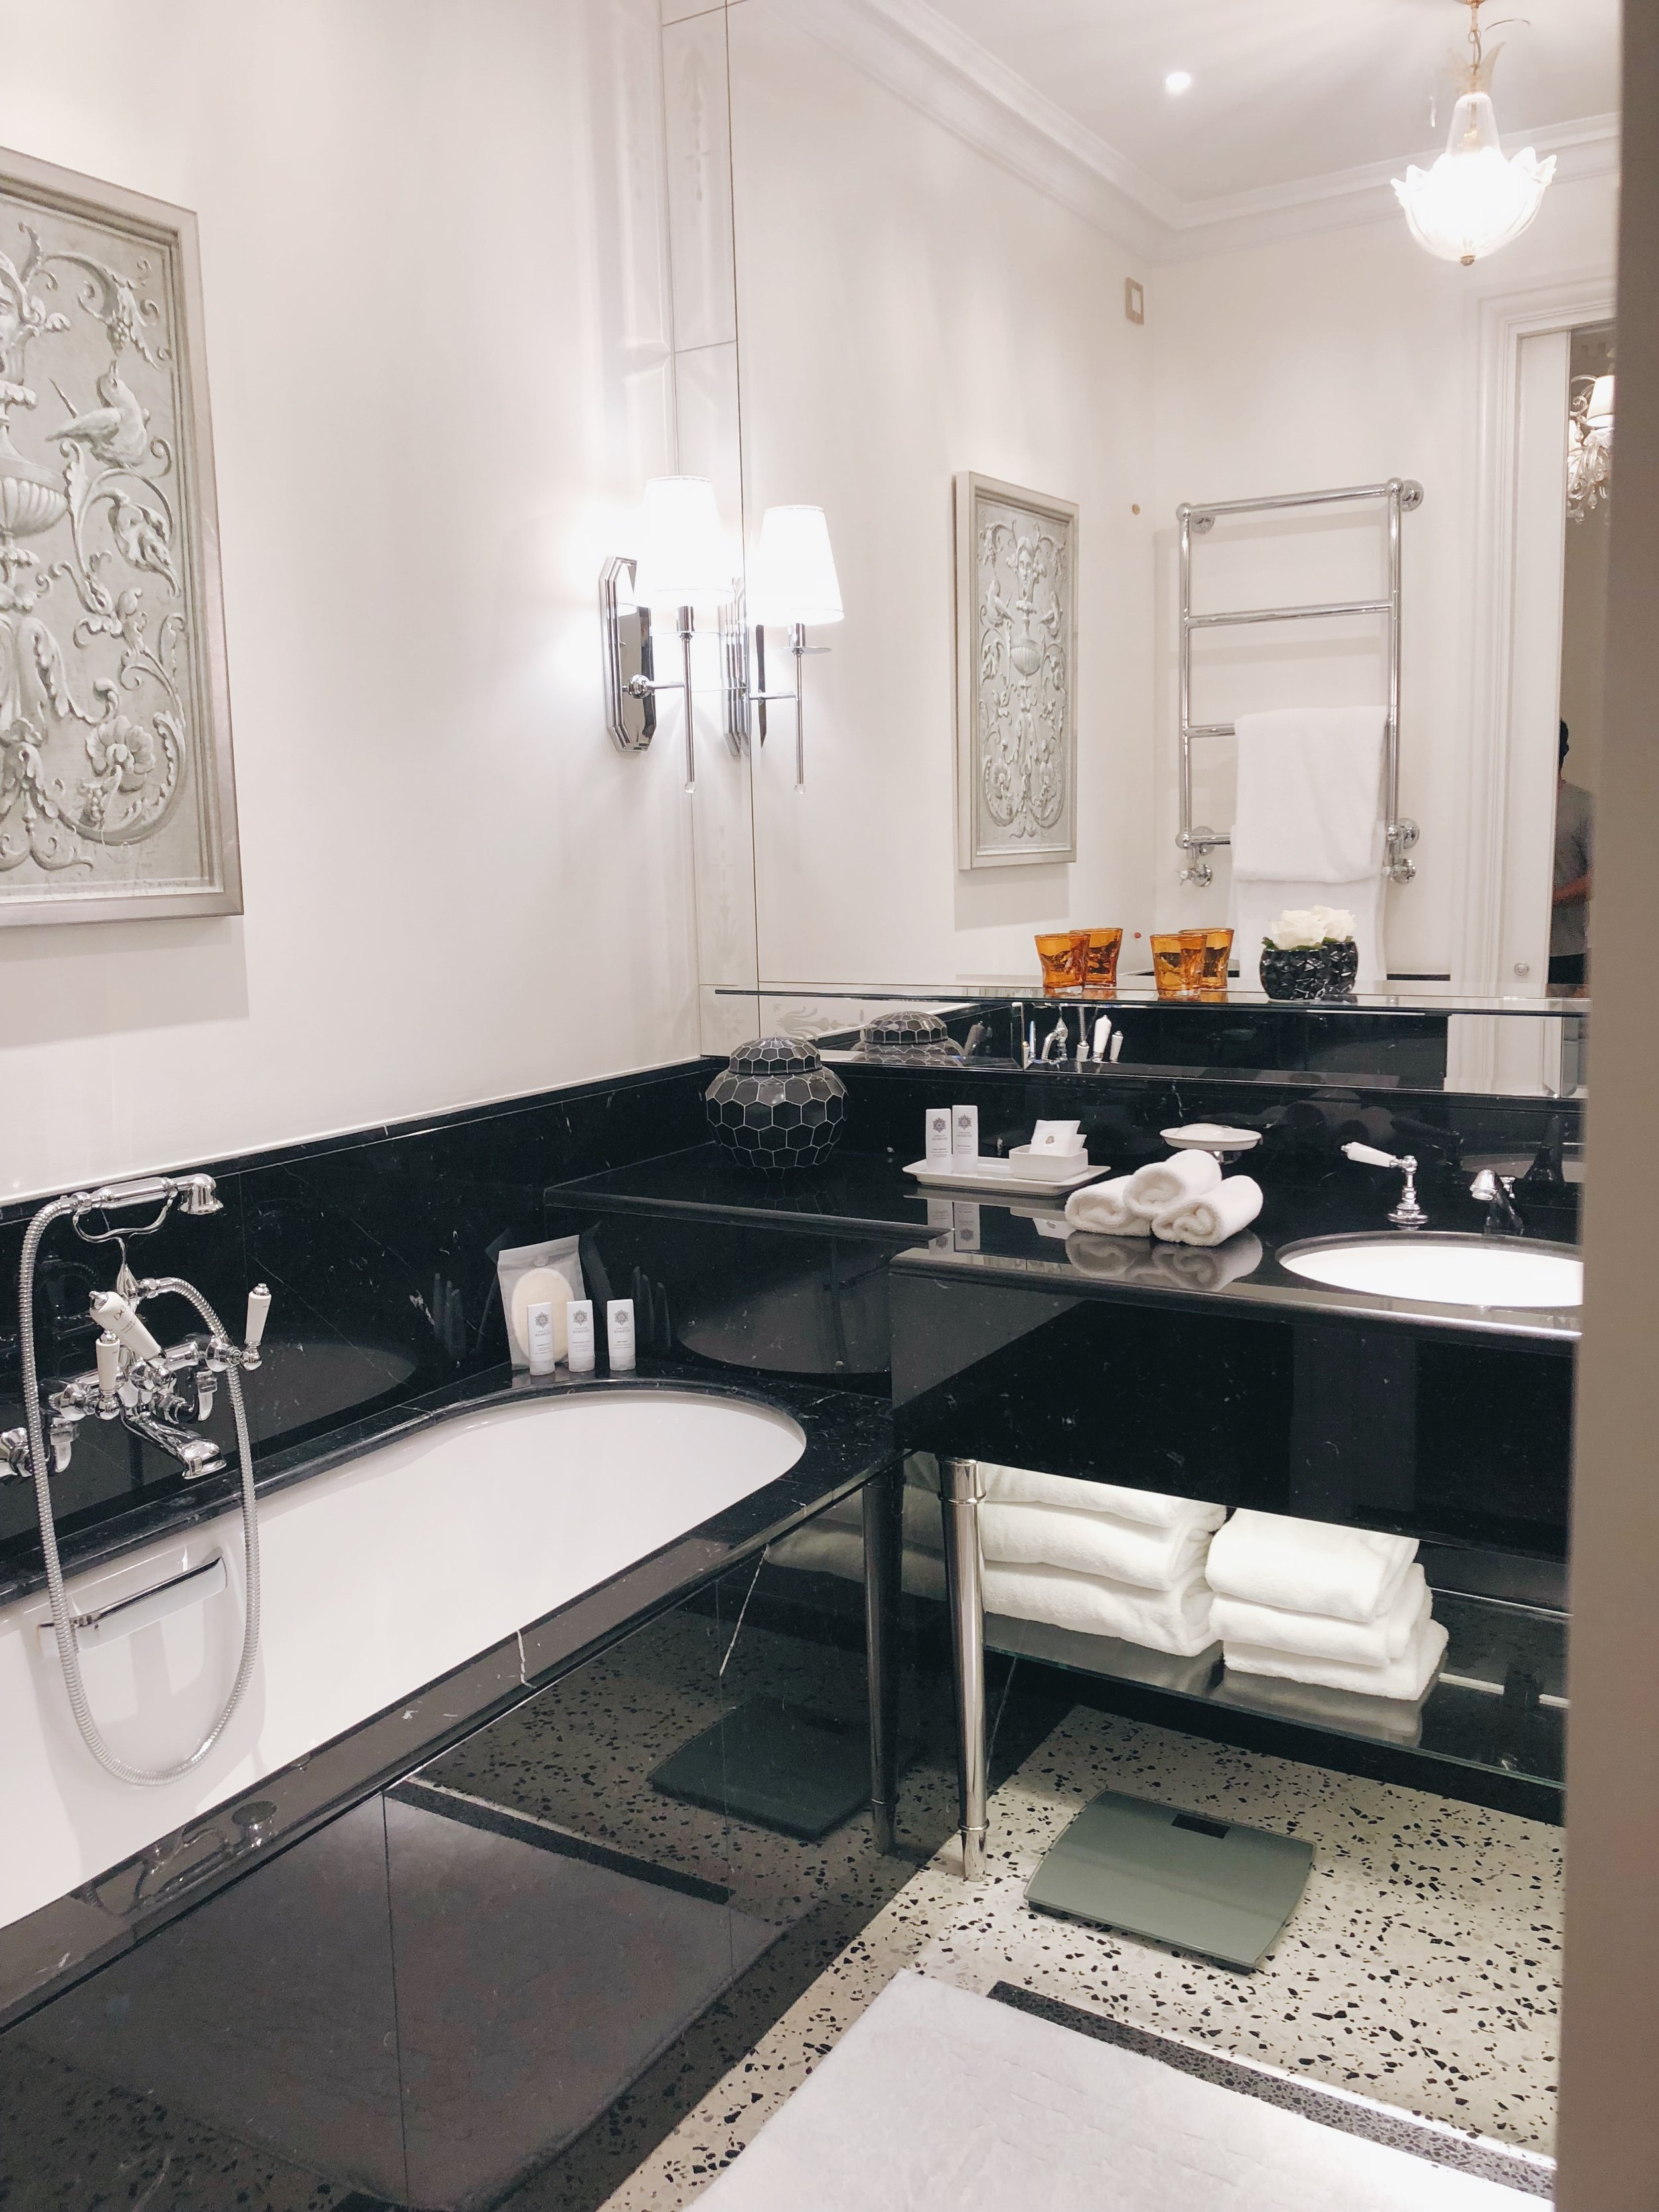 Black marble bathroom with soaking tub, separate shower, and water closet (with toilet and bidet).